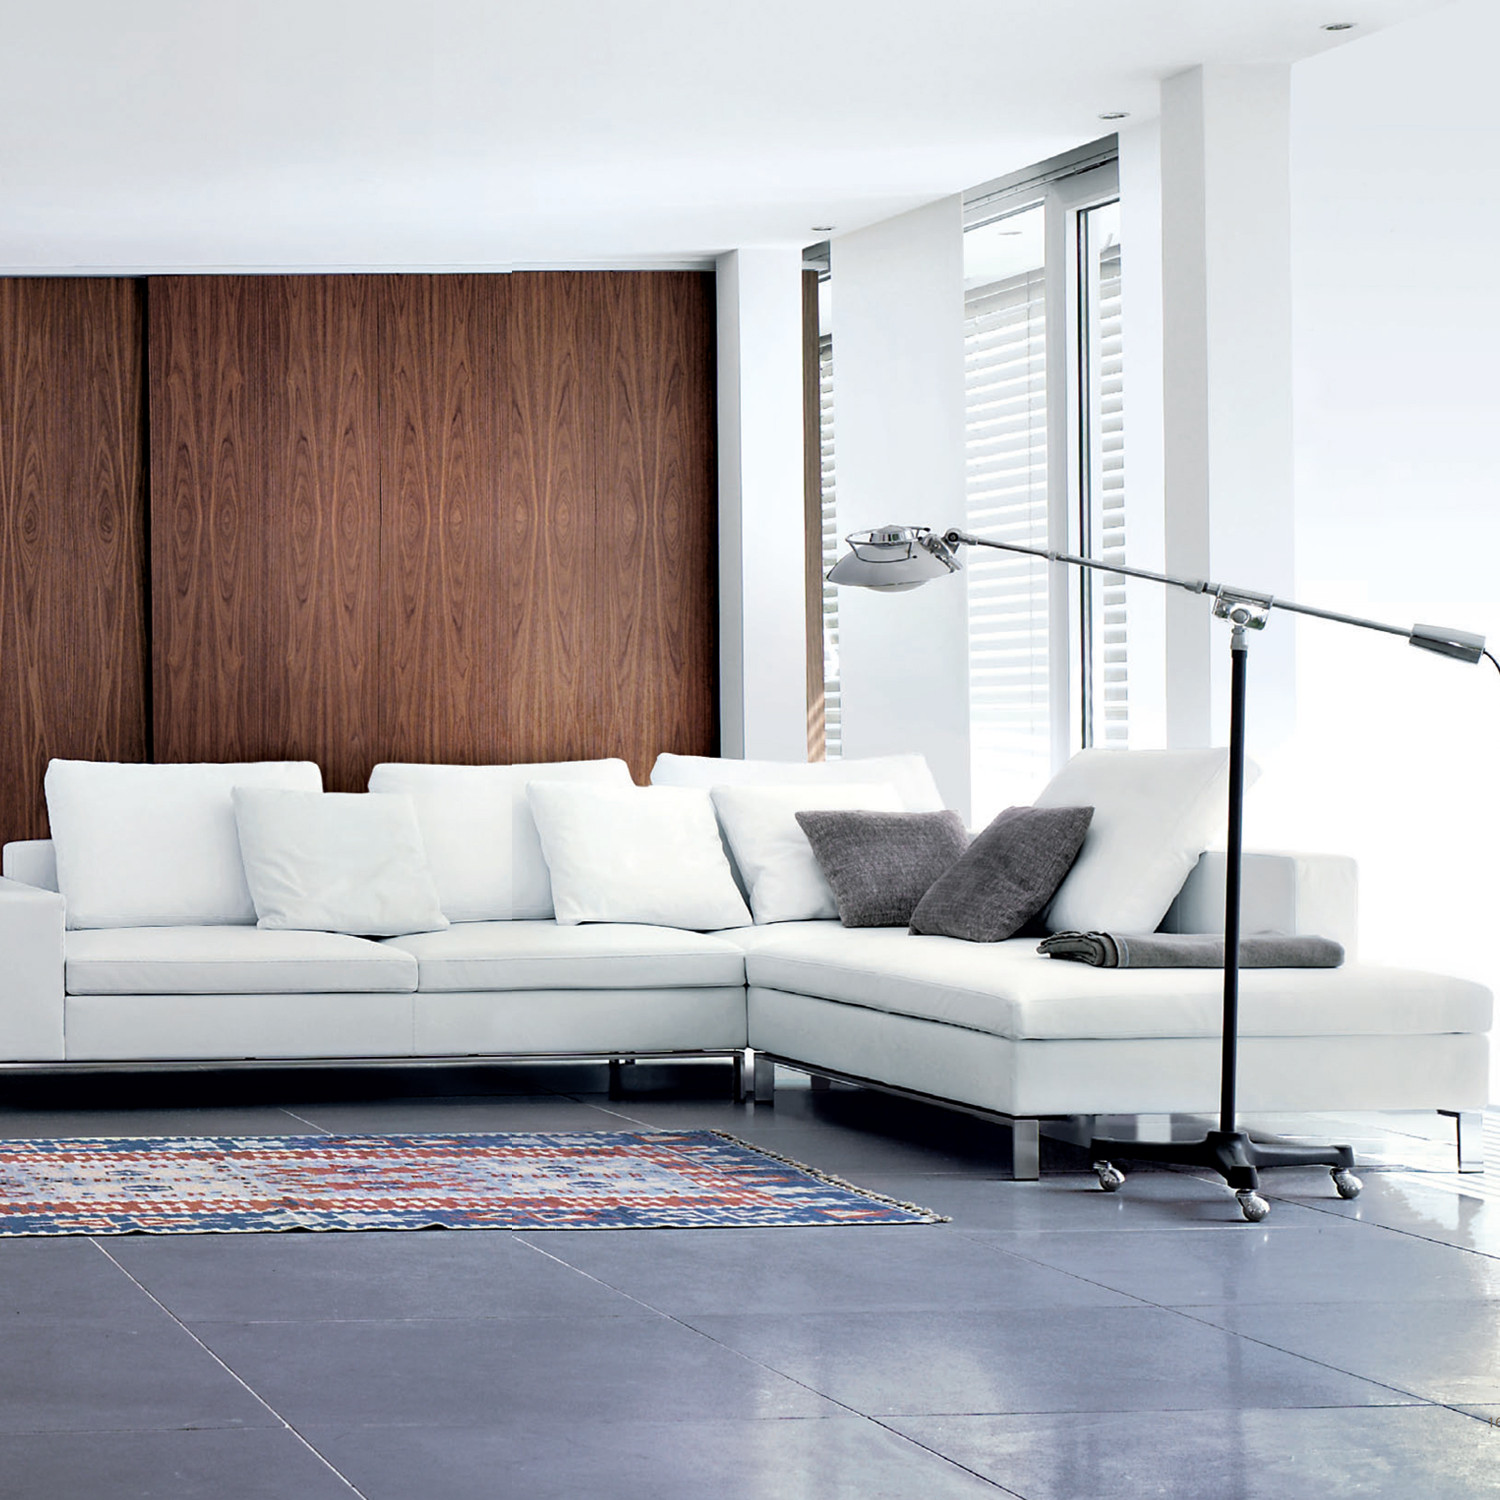 Foster 505 Sofa by Walter Knoll